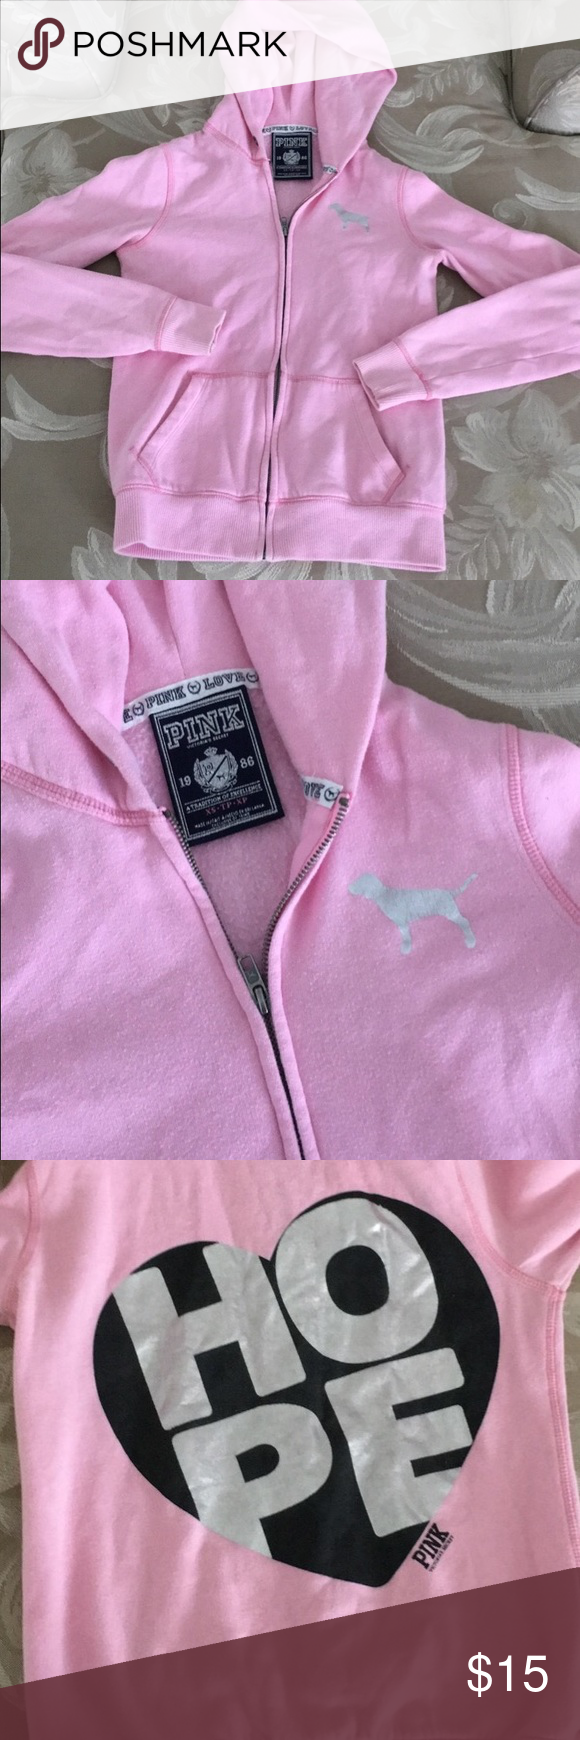 PINK Victoria's Secret sweatshirt PINK Victoria's Secret sweatshirt. Size XS PINK Victoria's Secret Sweaters